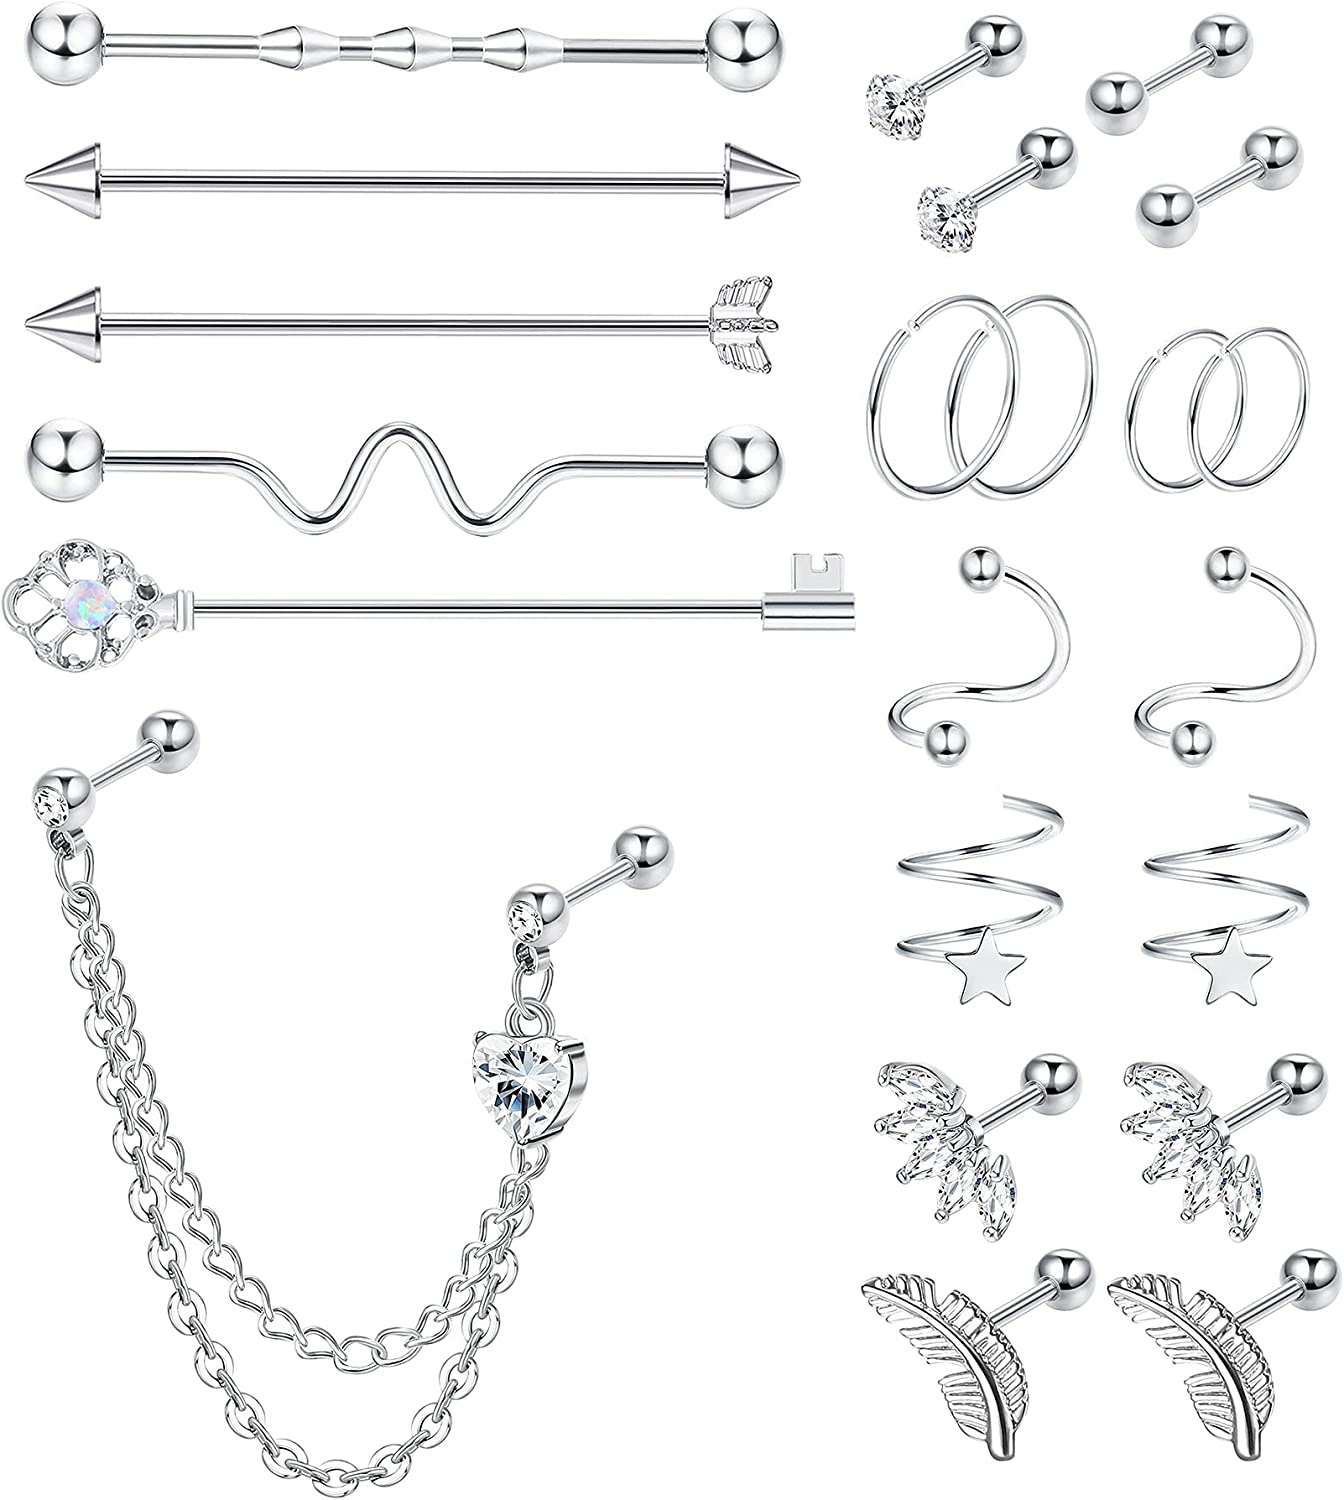 Subiceto 14G Surgical Steel Industrial Piercing Jewelry Helix Tragus Cartilage Earrings Hoop Daith Rook Conch Piercing Body Piercing Jewelry 22Pcs